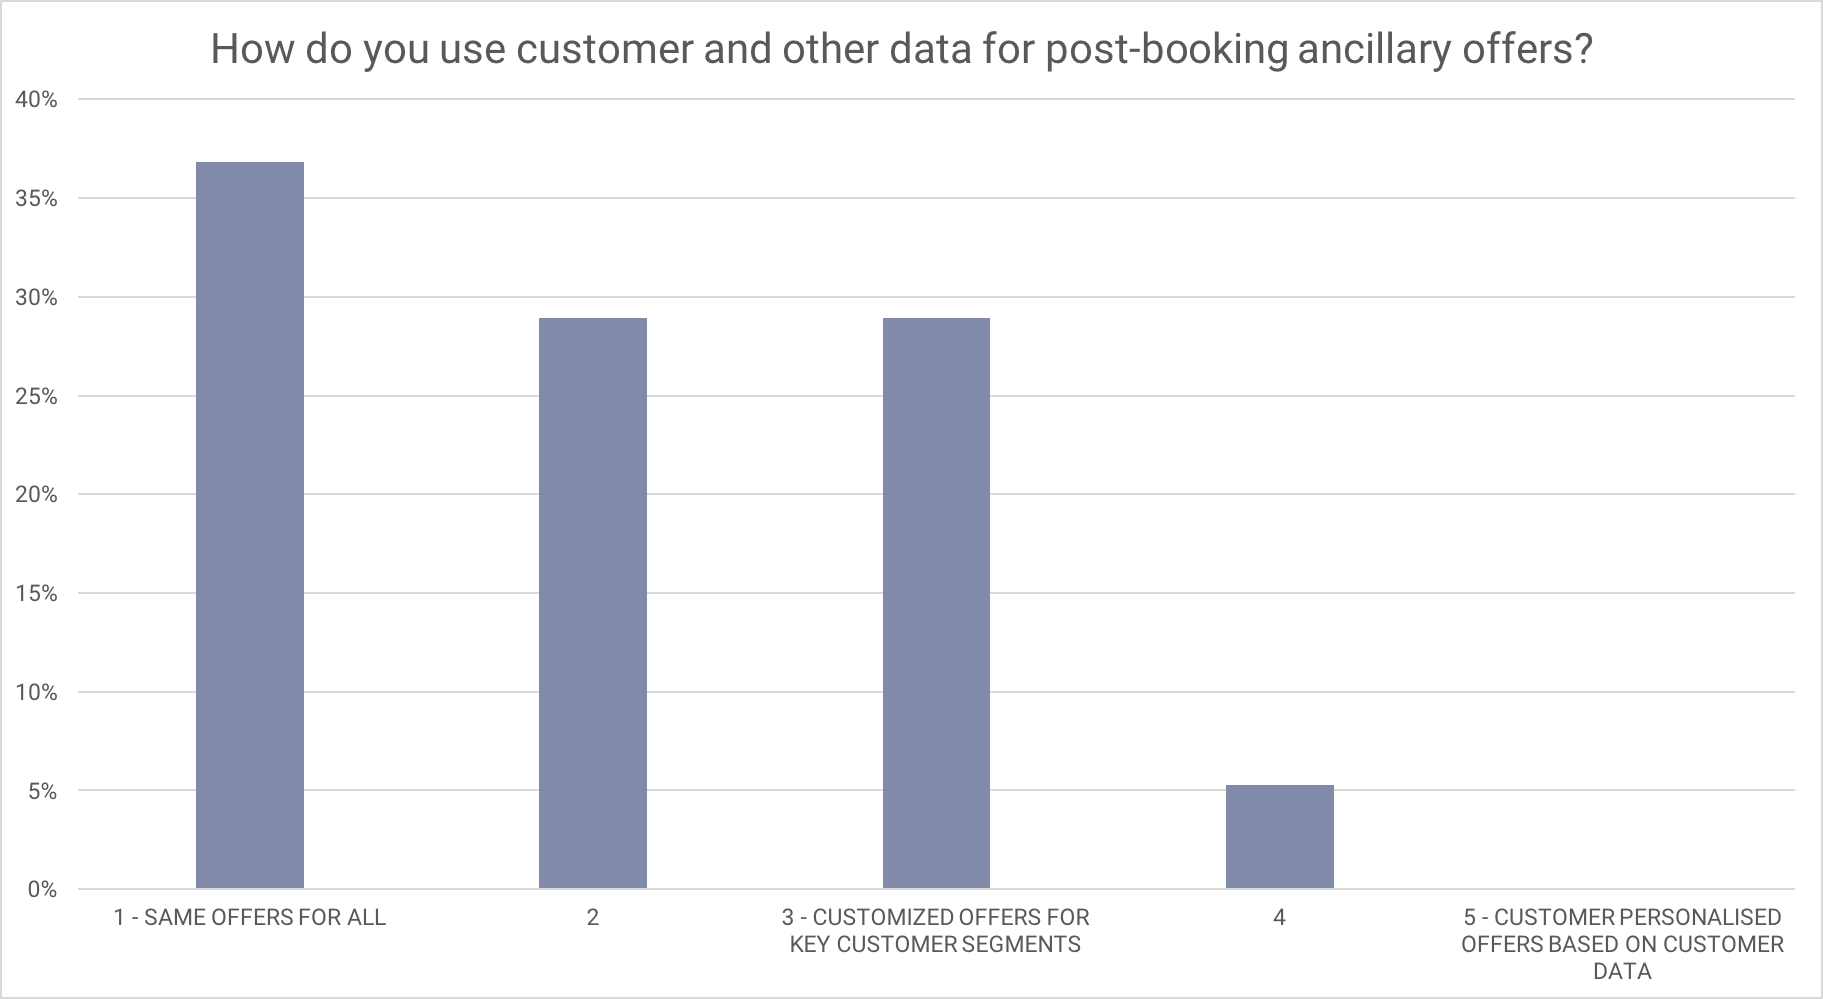 Ancillary revenue ideas for airlines - better use of data for hyper-segmentation